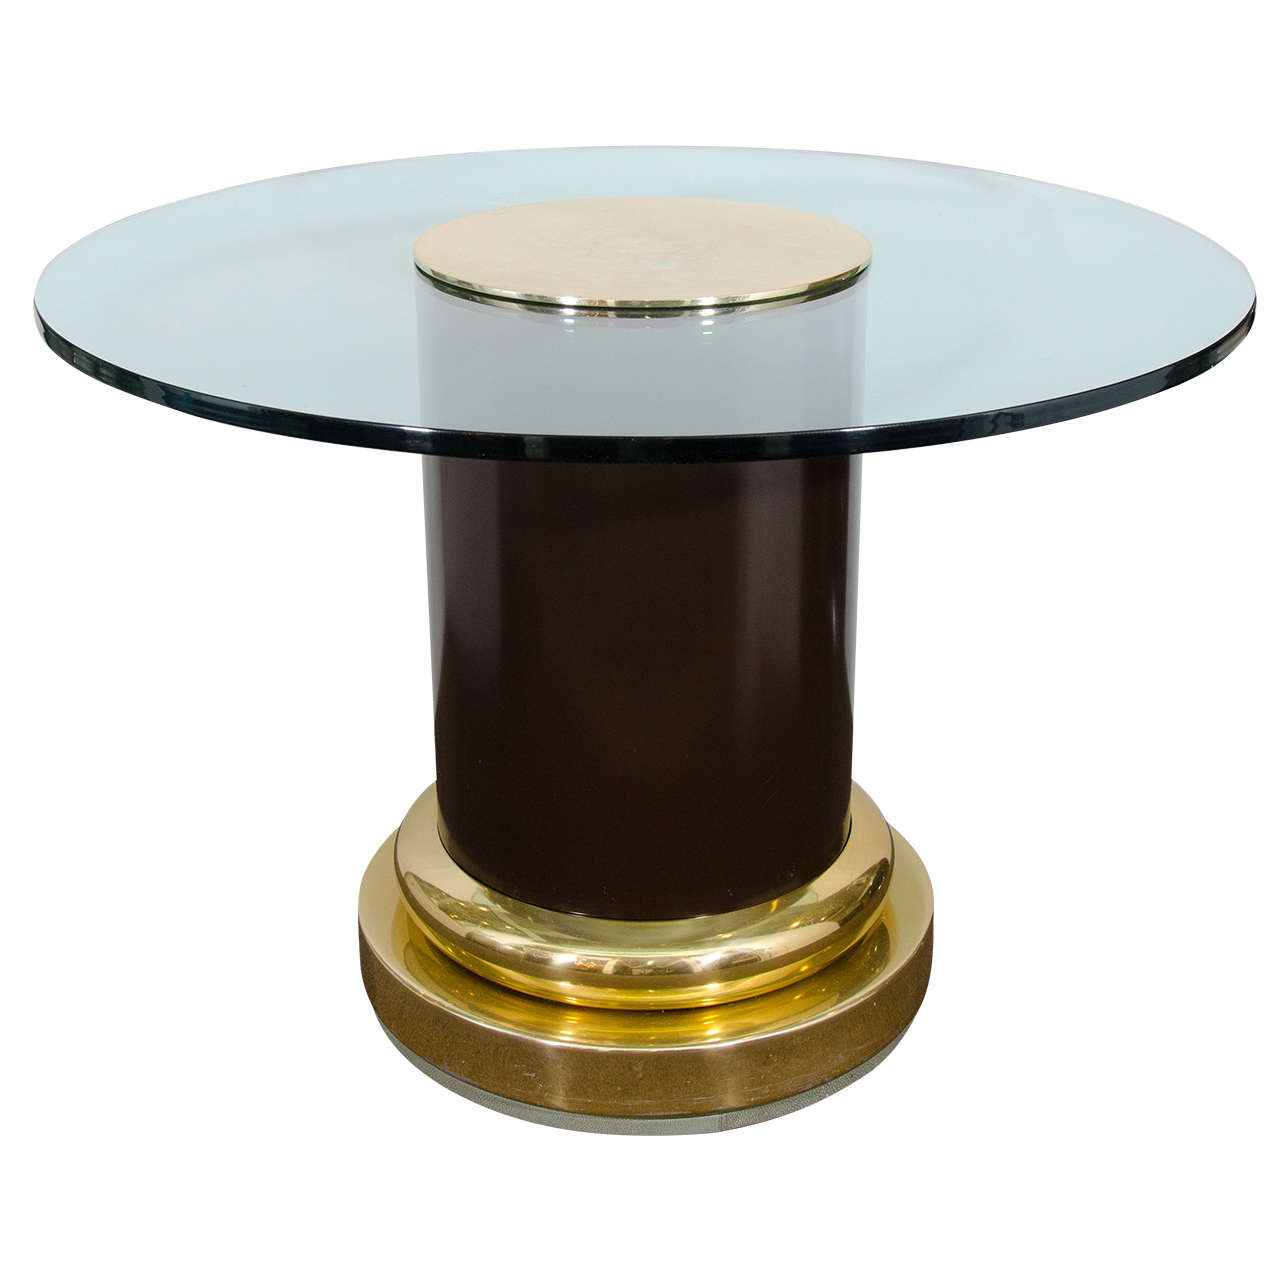 Noguchi Cyclone Table Midcentury Glass Top Table with Cylindrical Column and Brass Pedestal ...